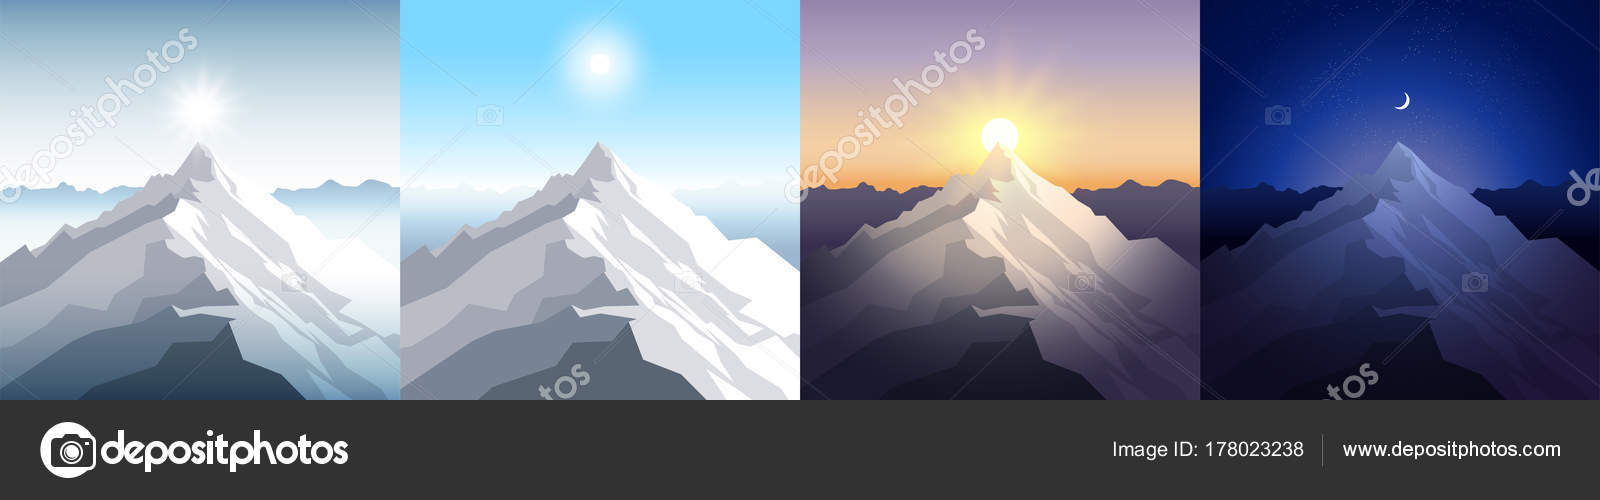 Nature mountain set A midday sun dawn sunset night in the